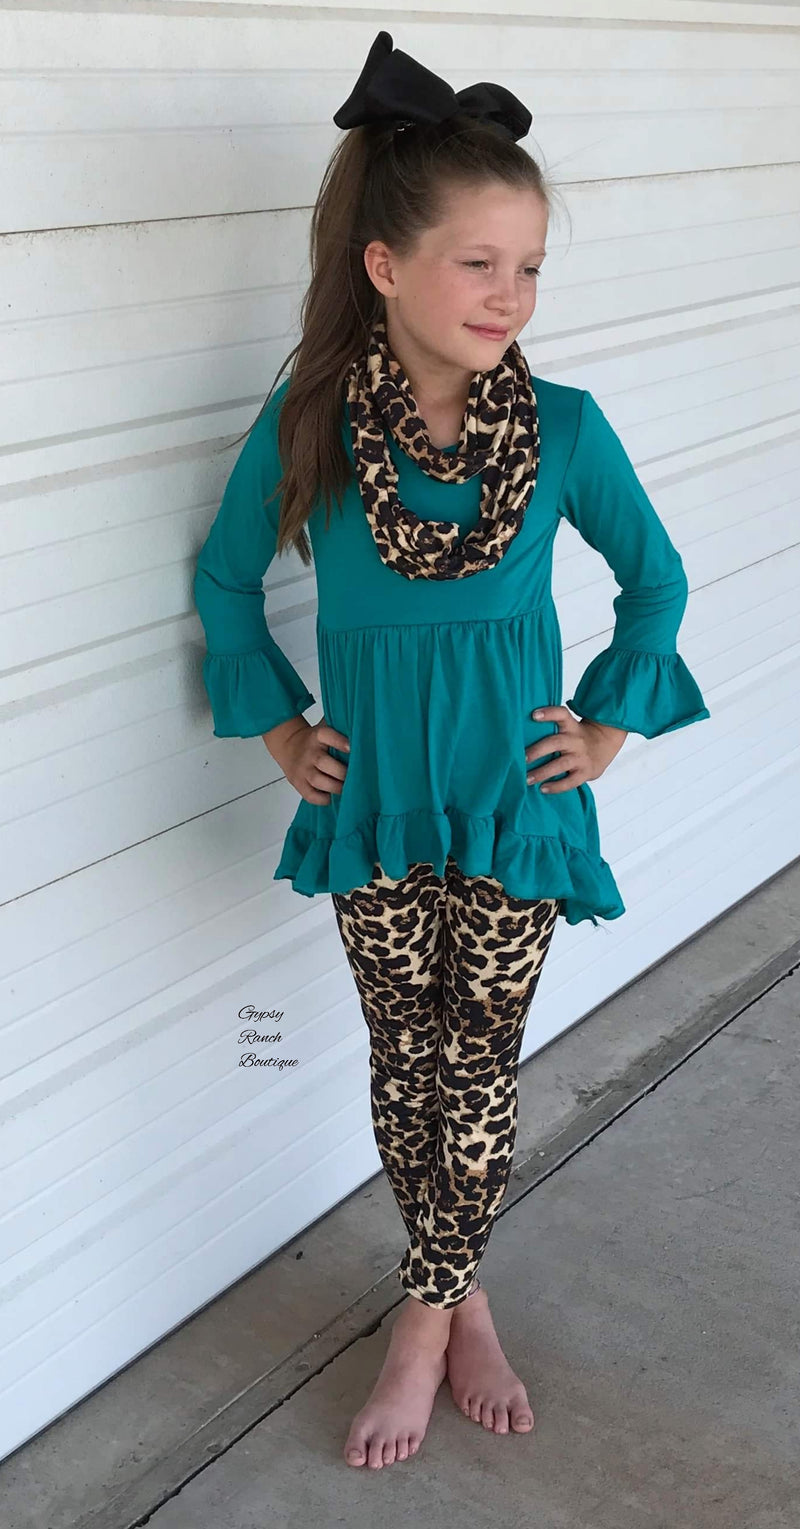 Stormy Turquoise Leopard 3 piece set